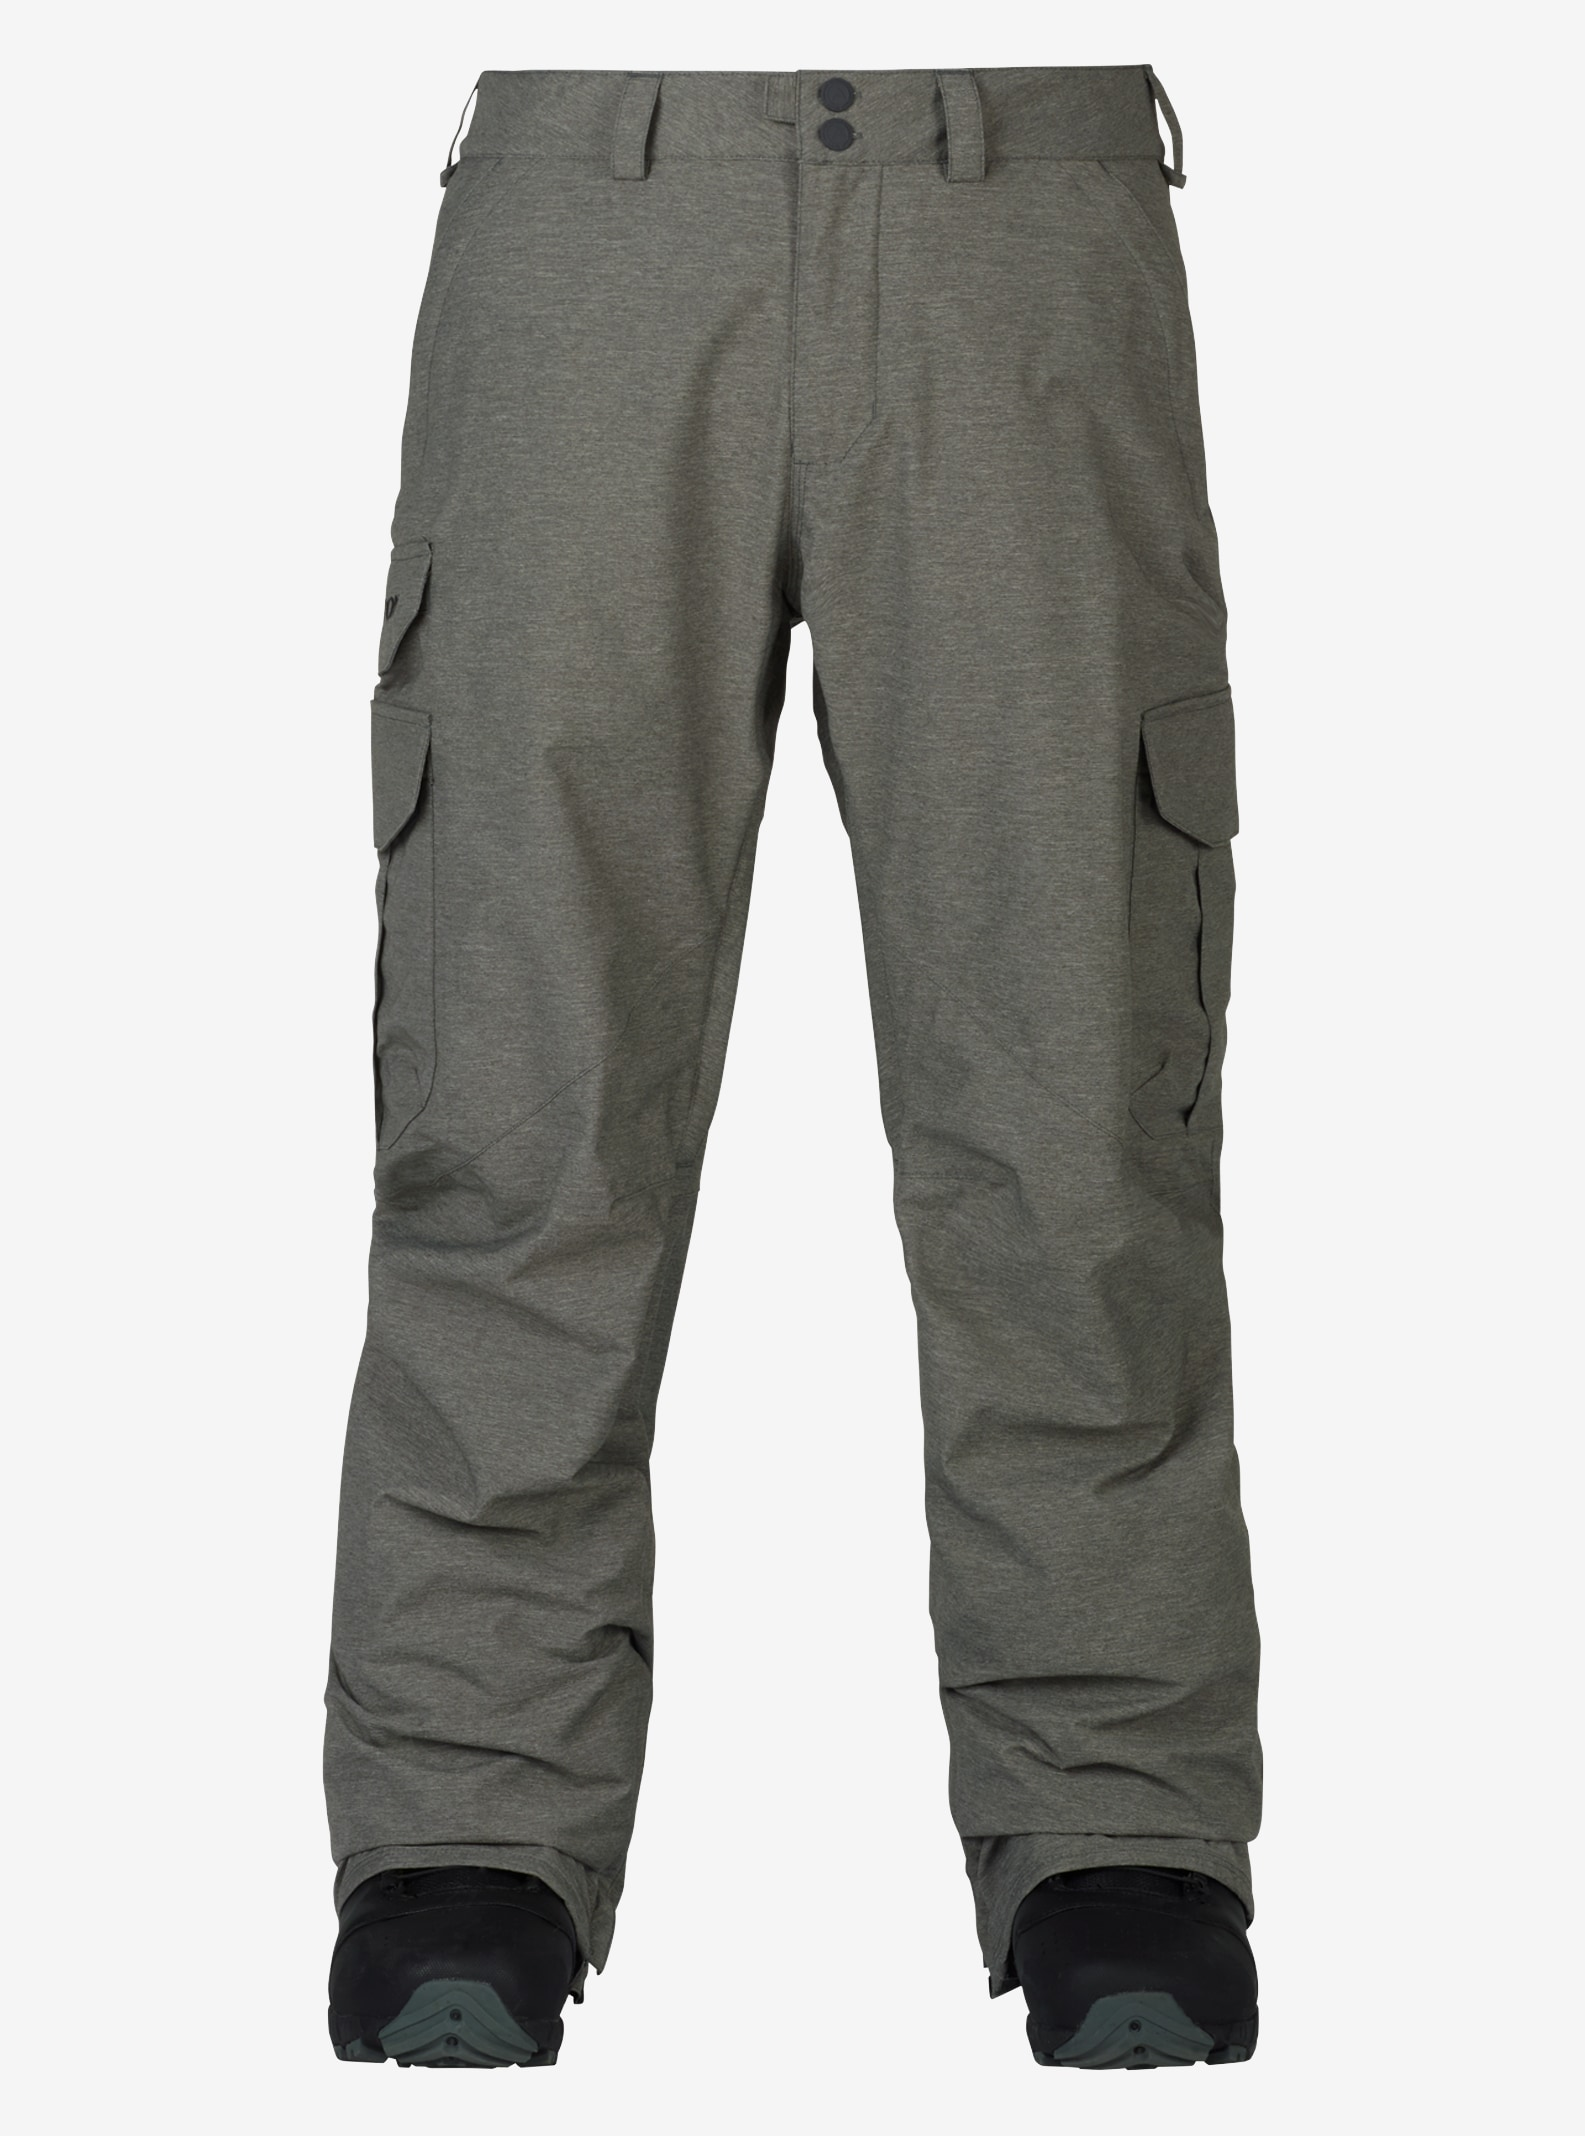 Men's Burton Cargo Pant - Relaxed Fit shown in Shade Heather